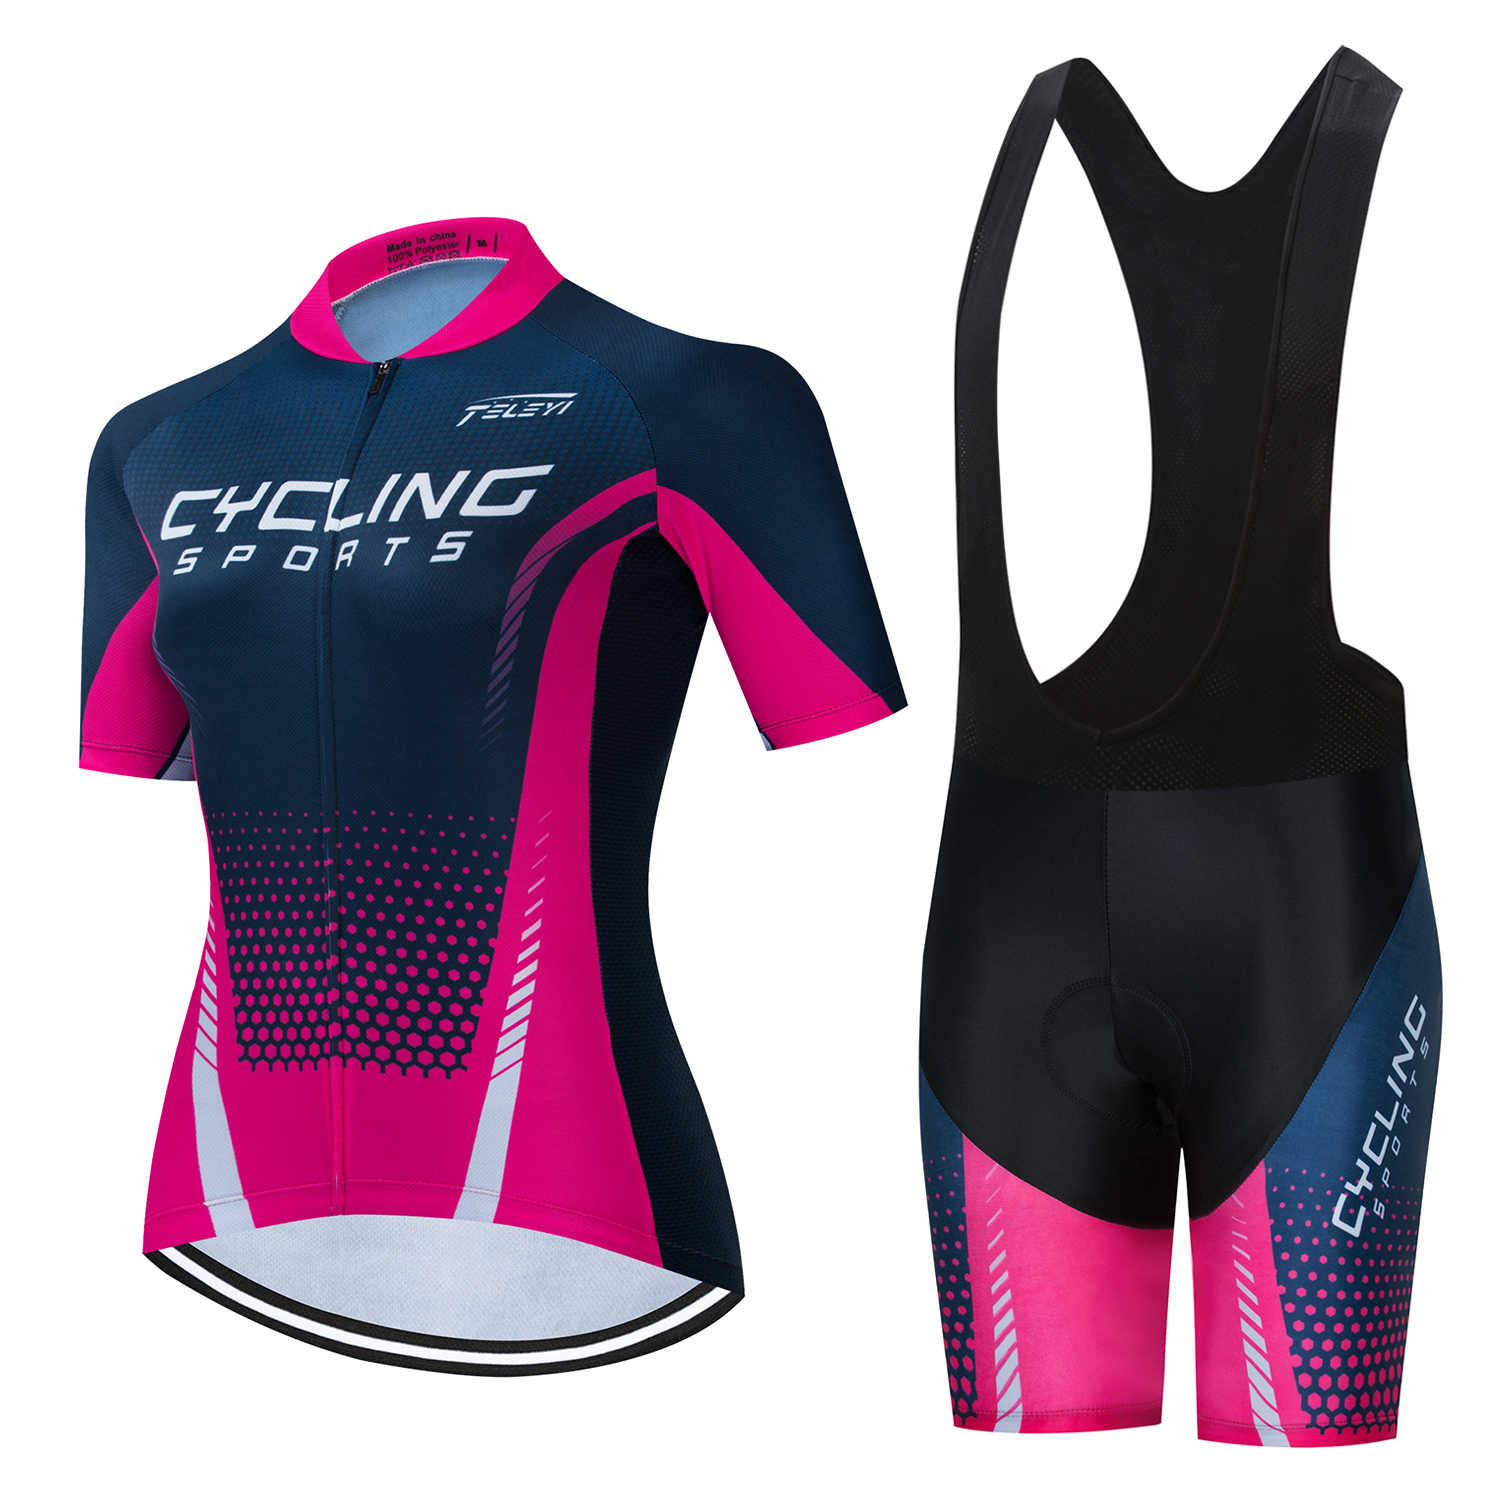 TELEYI Women/'s Cycling Jersey Set Short Sleeve Bike Clothing Bicycle Jersey Set